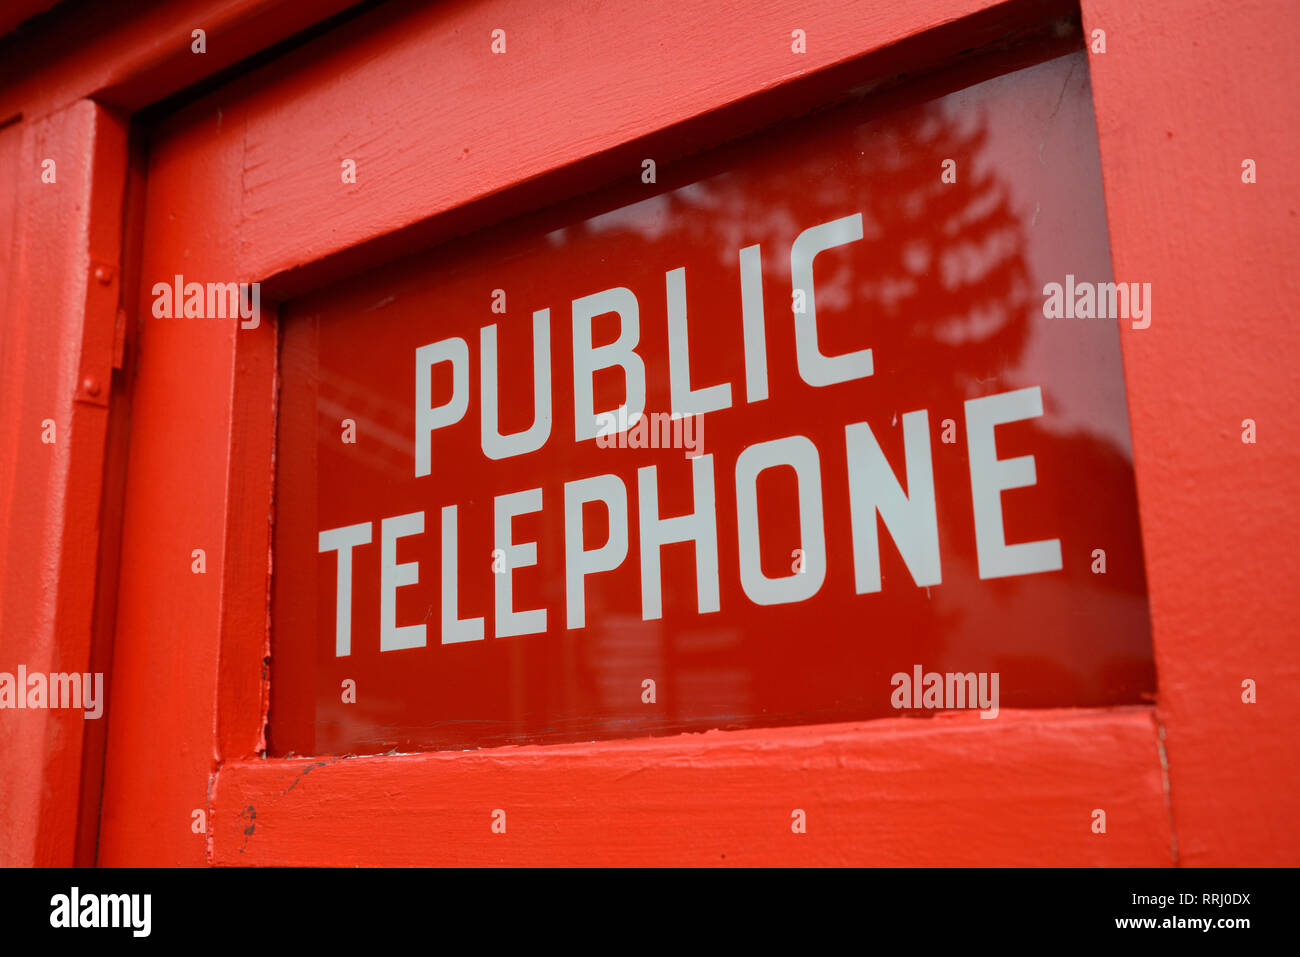 signage for a retro telephone box at Founders Museum, Nelson, New Zealand - Stock Image